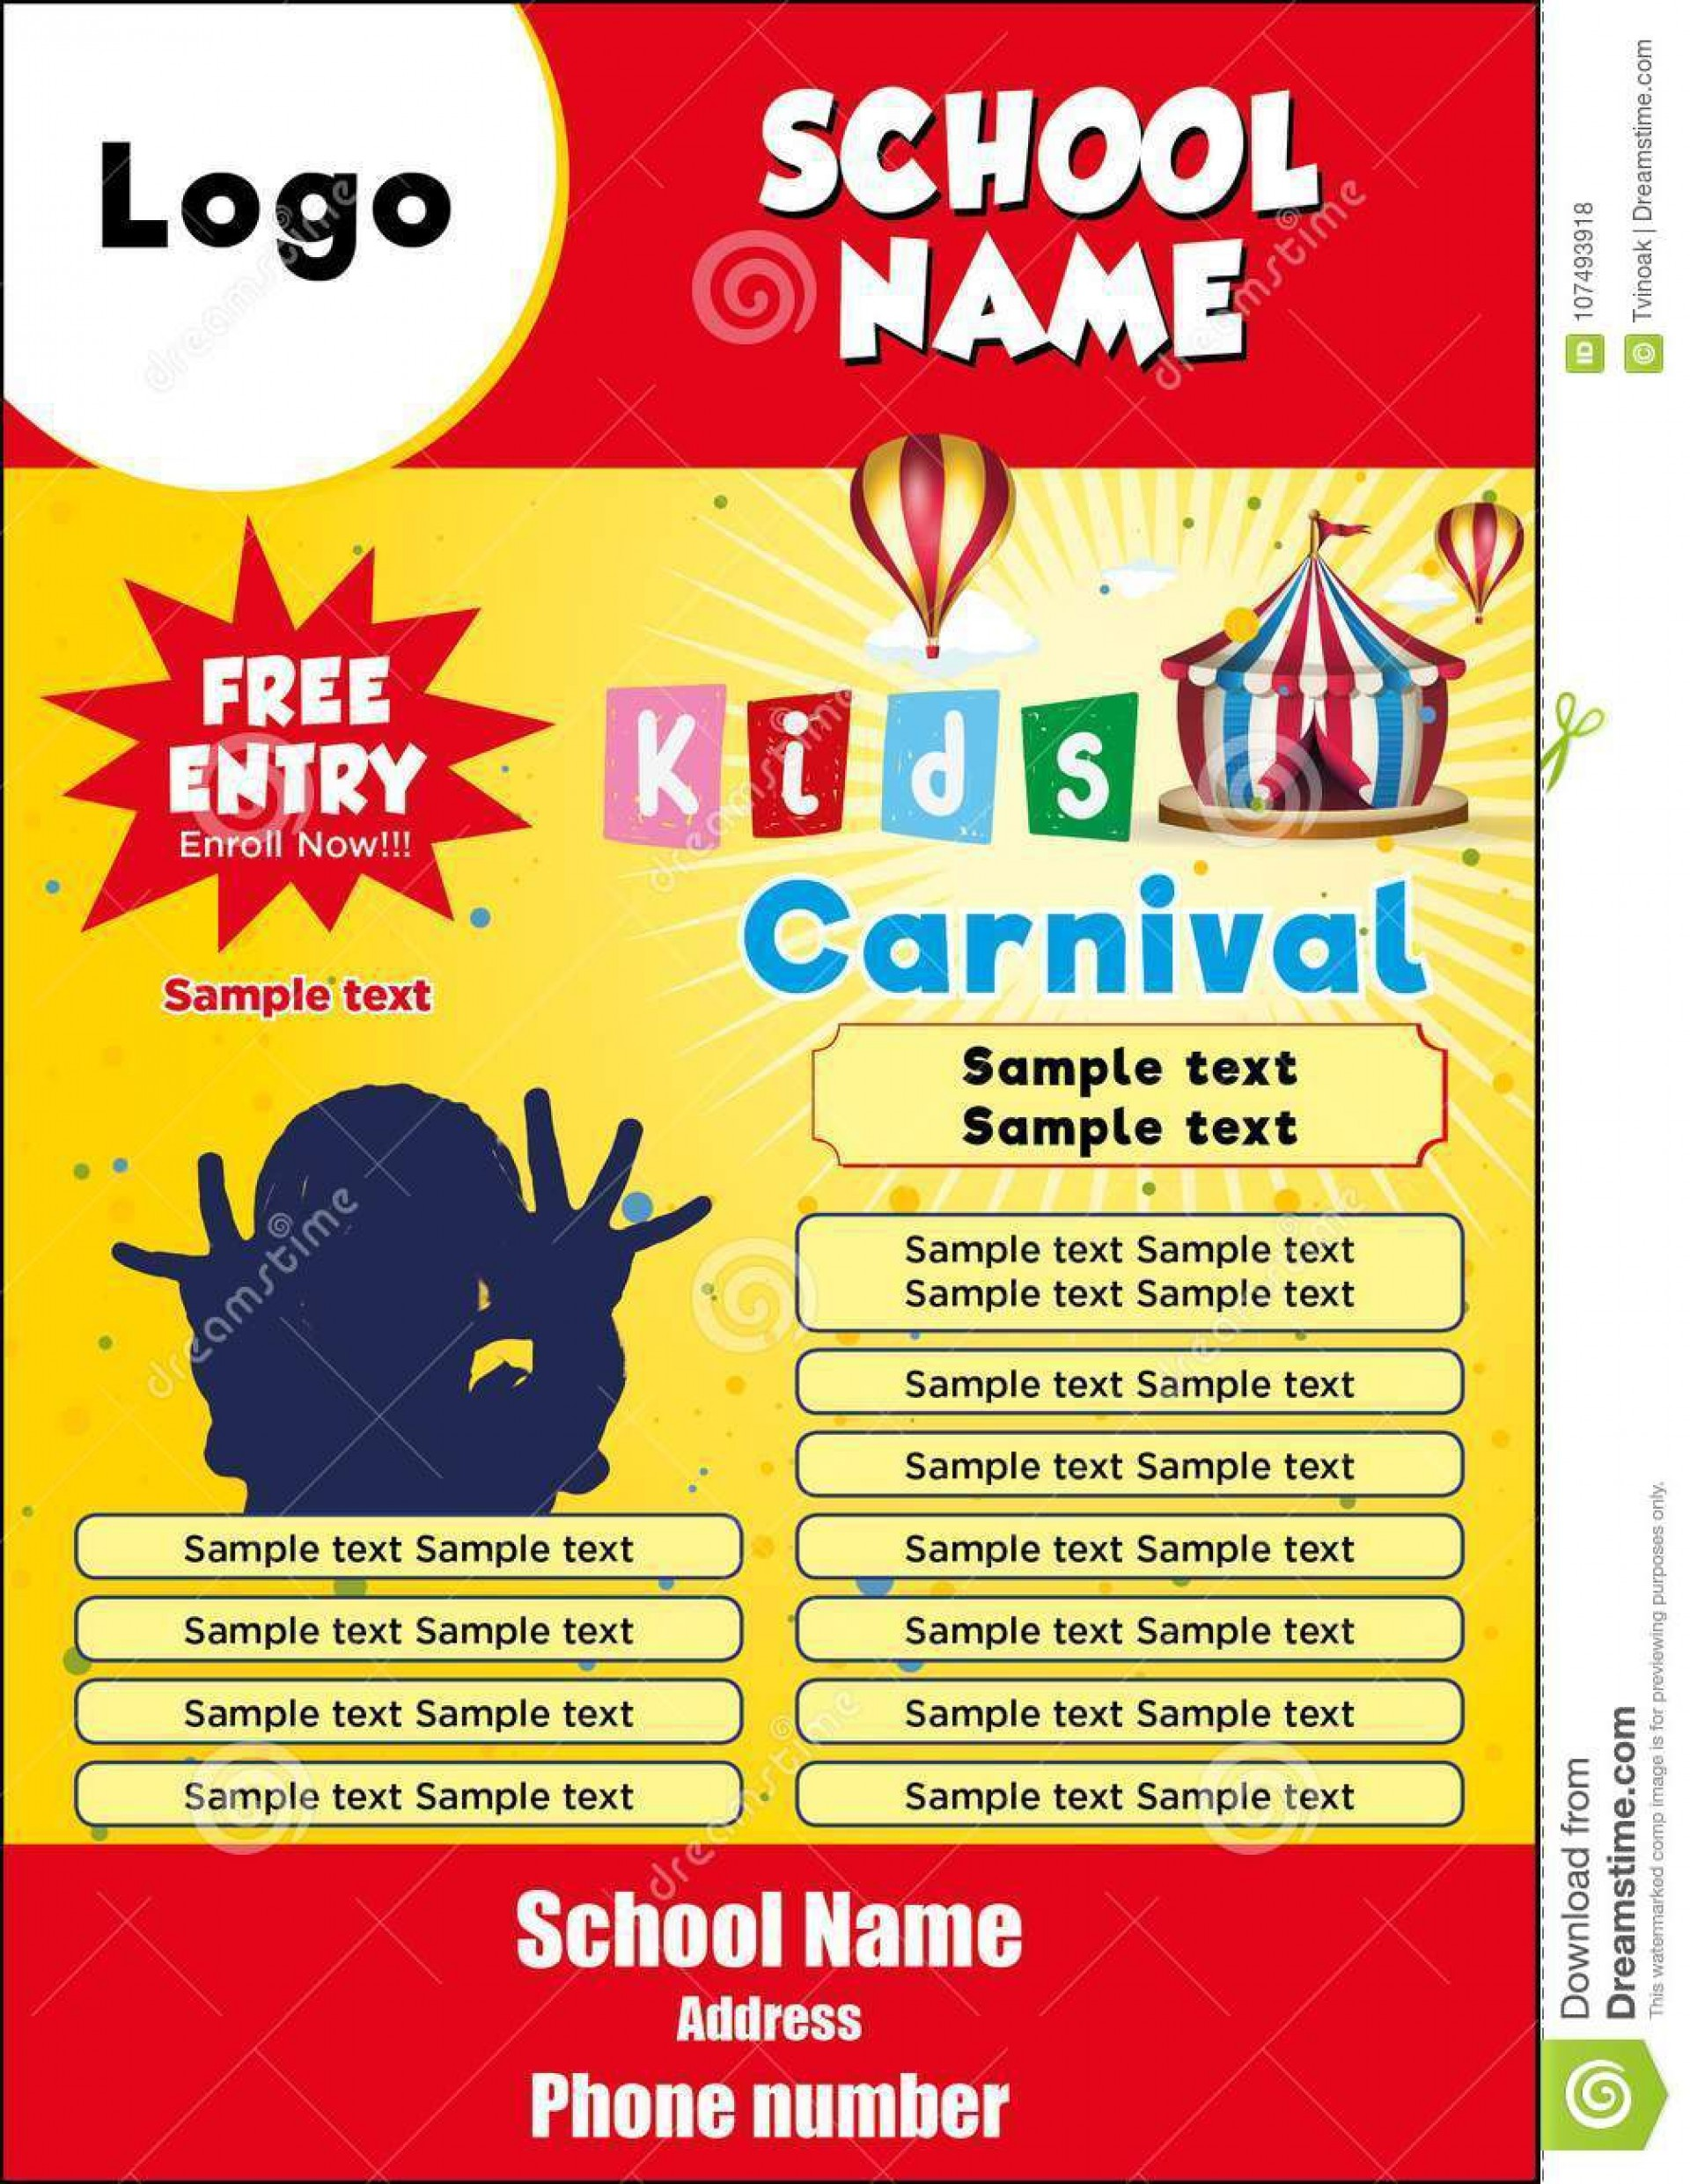 008 Stirring Free School Carnival Flyer Template Sample  Templates Download1920